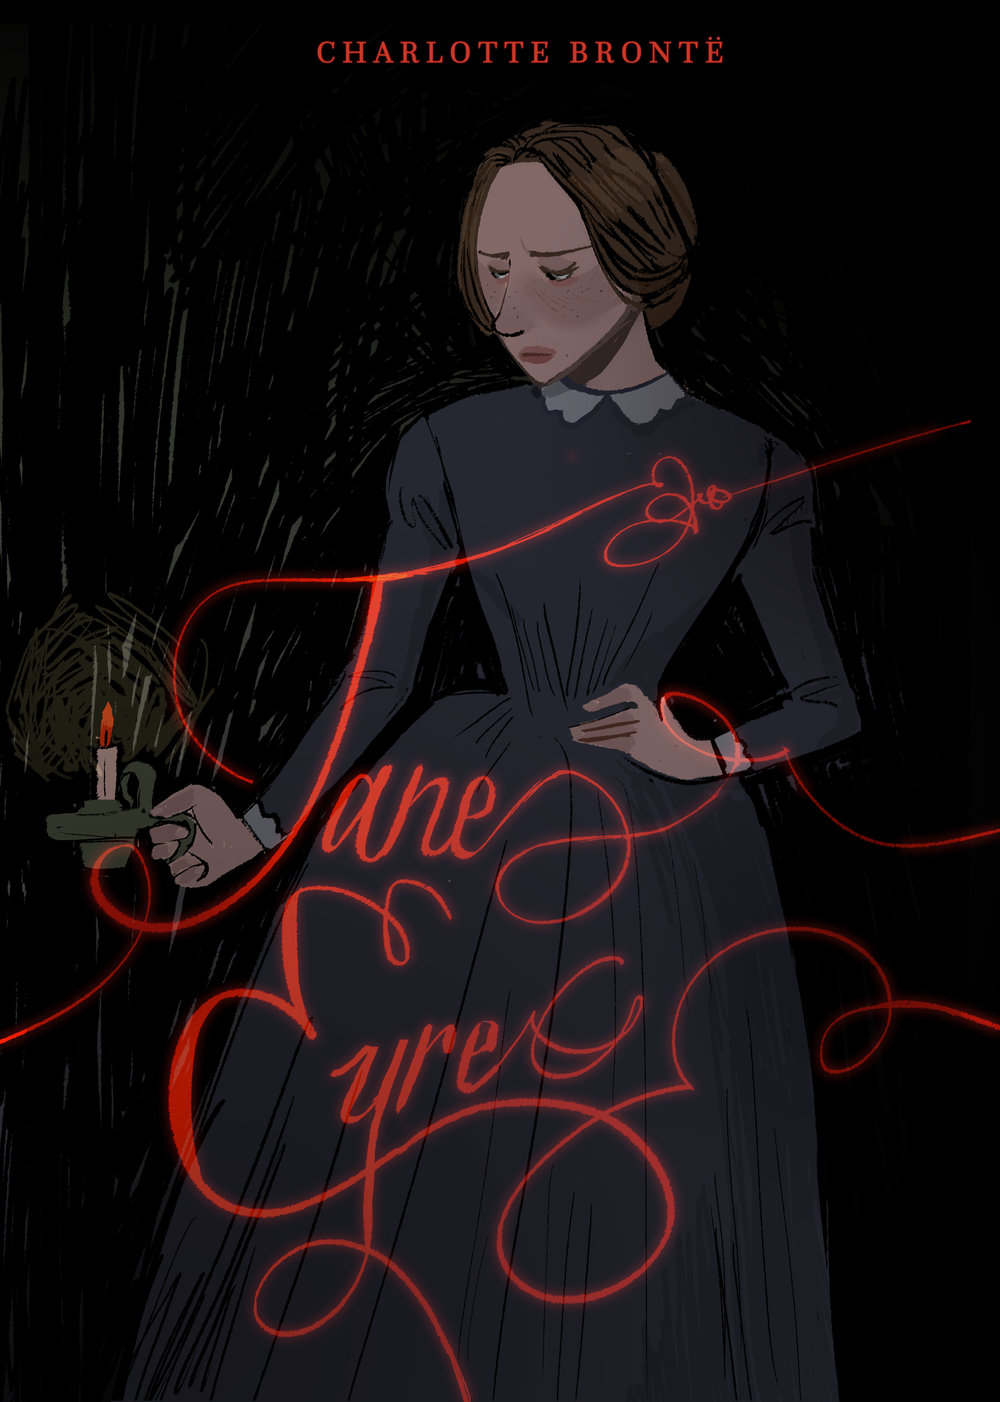 janeeyre2017oct.jpg